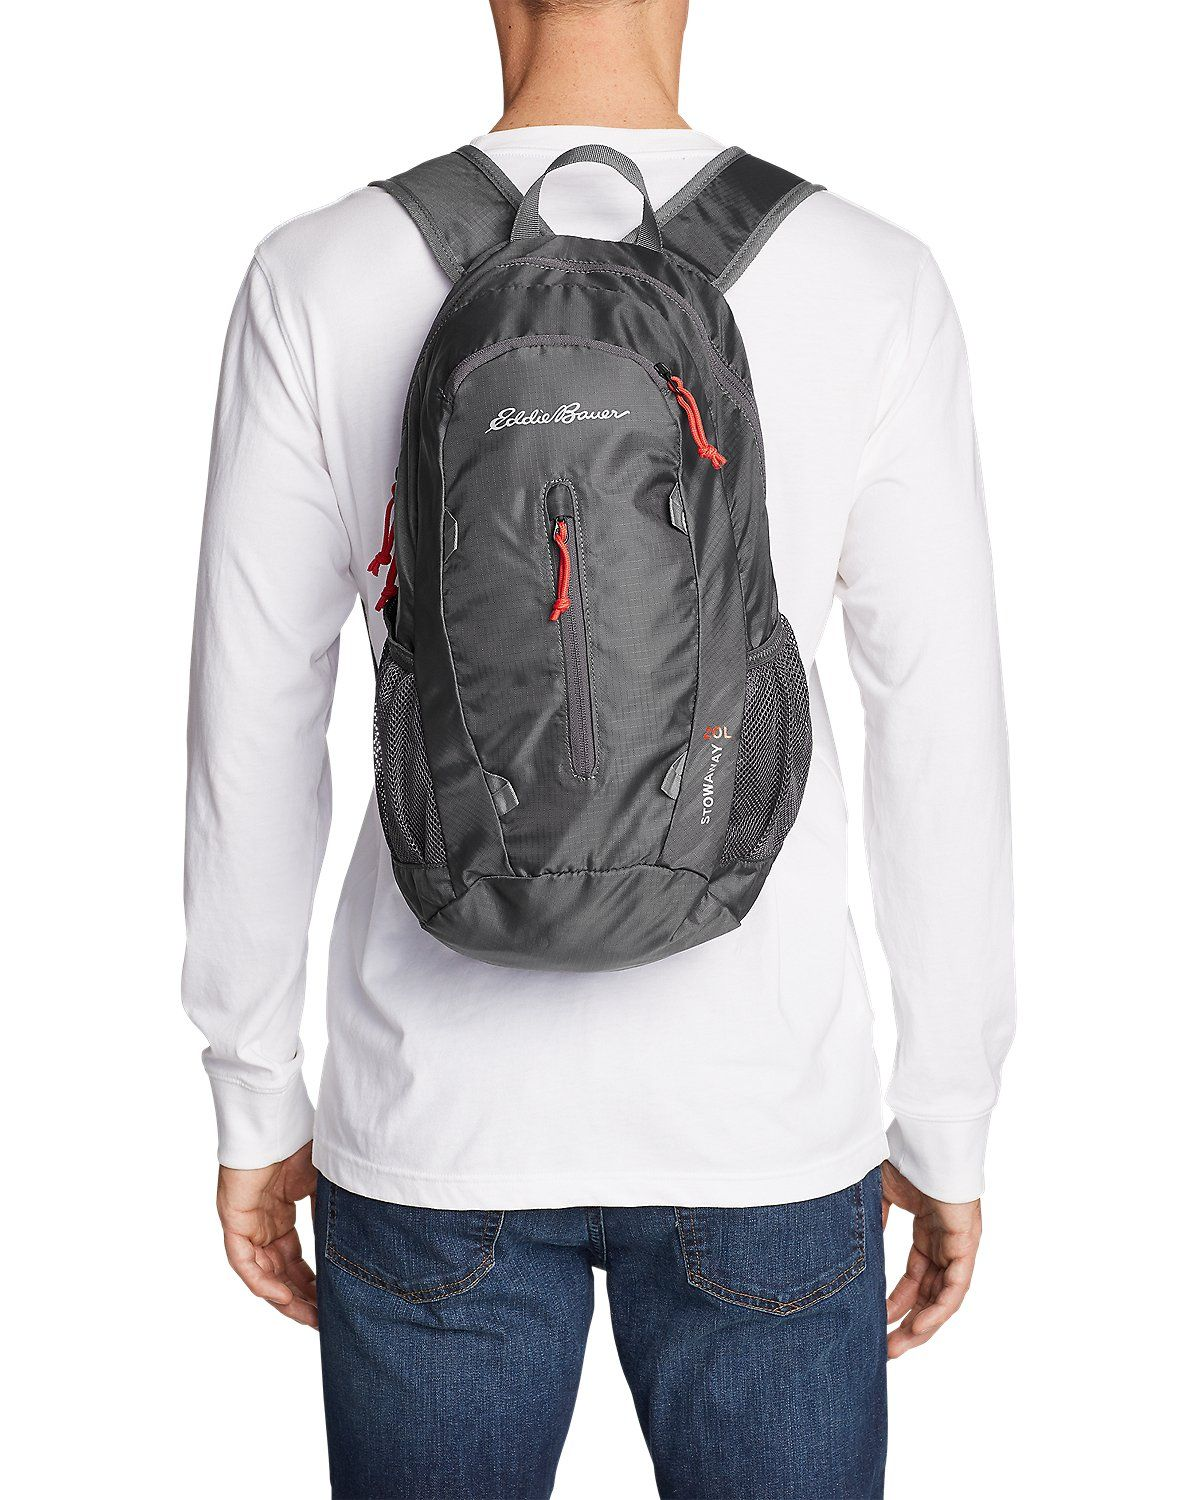 Stowaway Packable 20l Daypack Eddie Bauer North Face Backpack